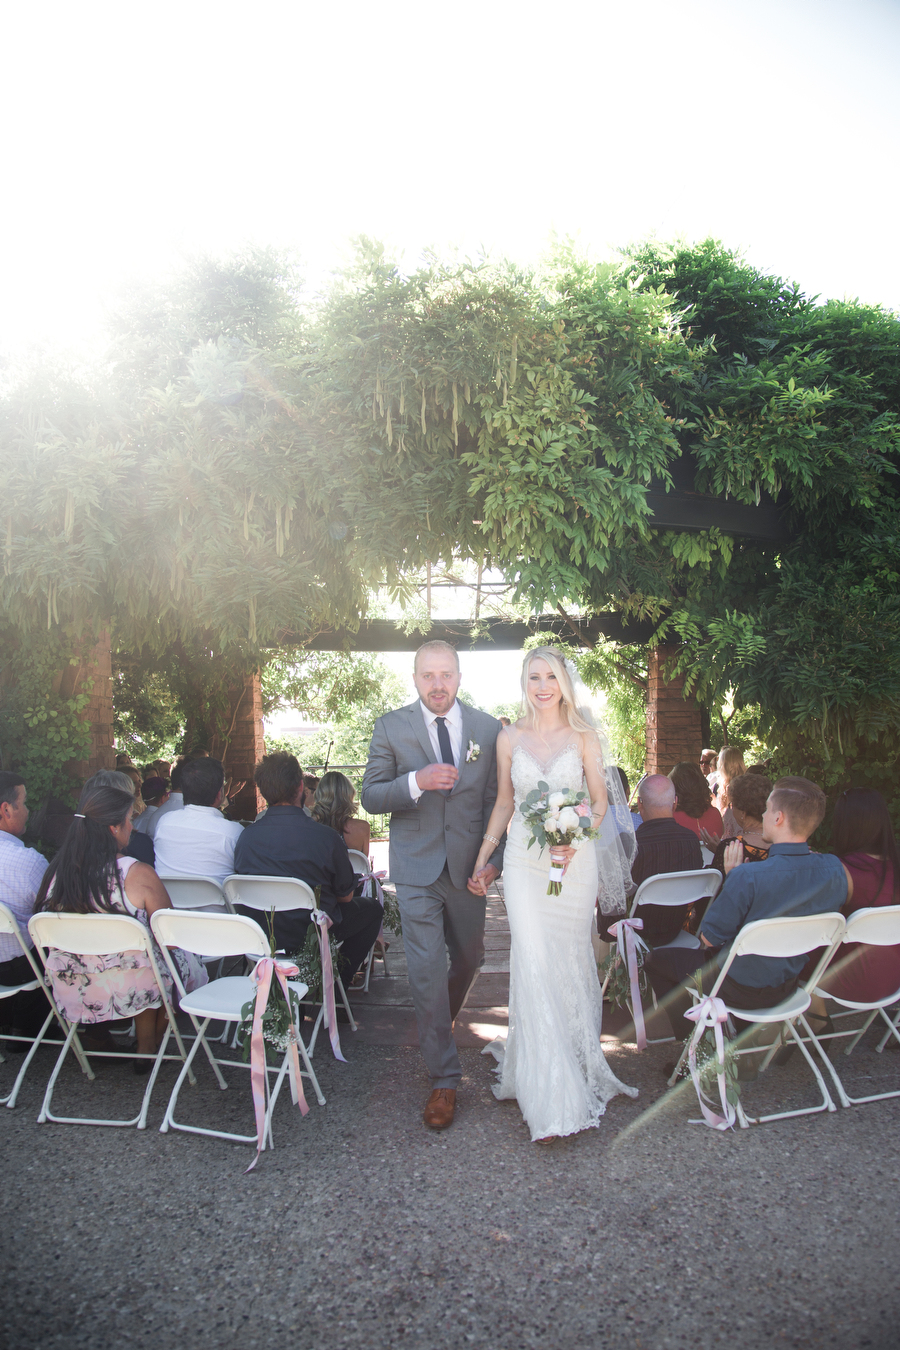 MARIACORONAPHOTOGRAPHY_WEDDING_UTAH_0231.JPG